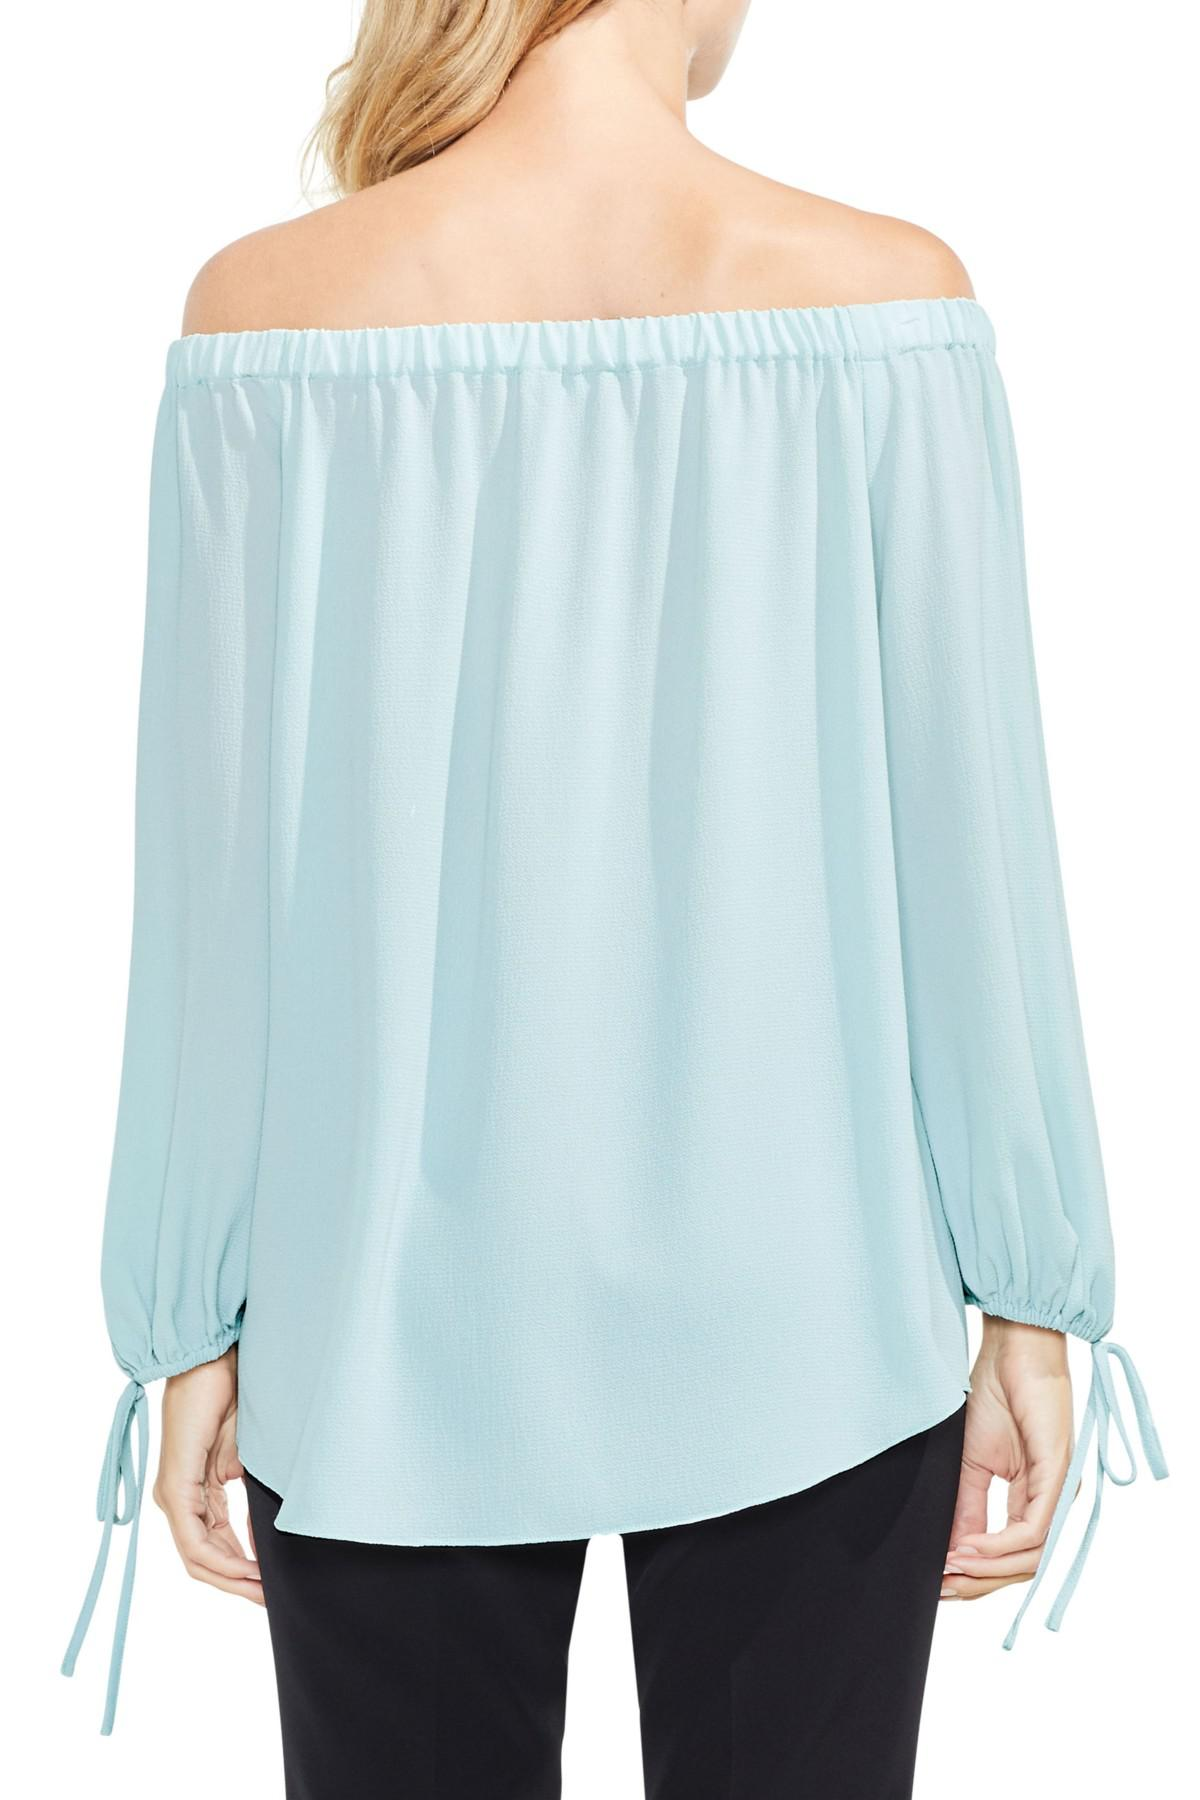 8abc060373fc5 Lyst - Vince Camuto Tie-cuff Off The Shoulder Blouse in Blue